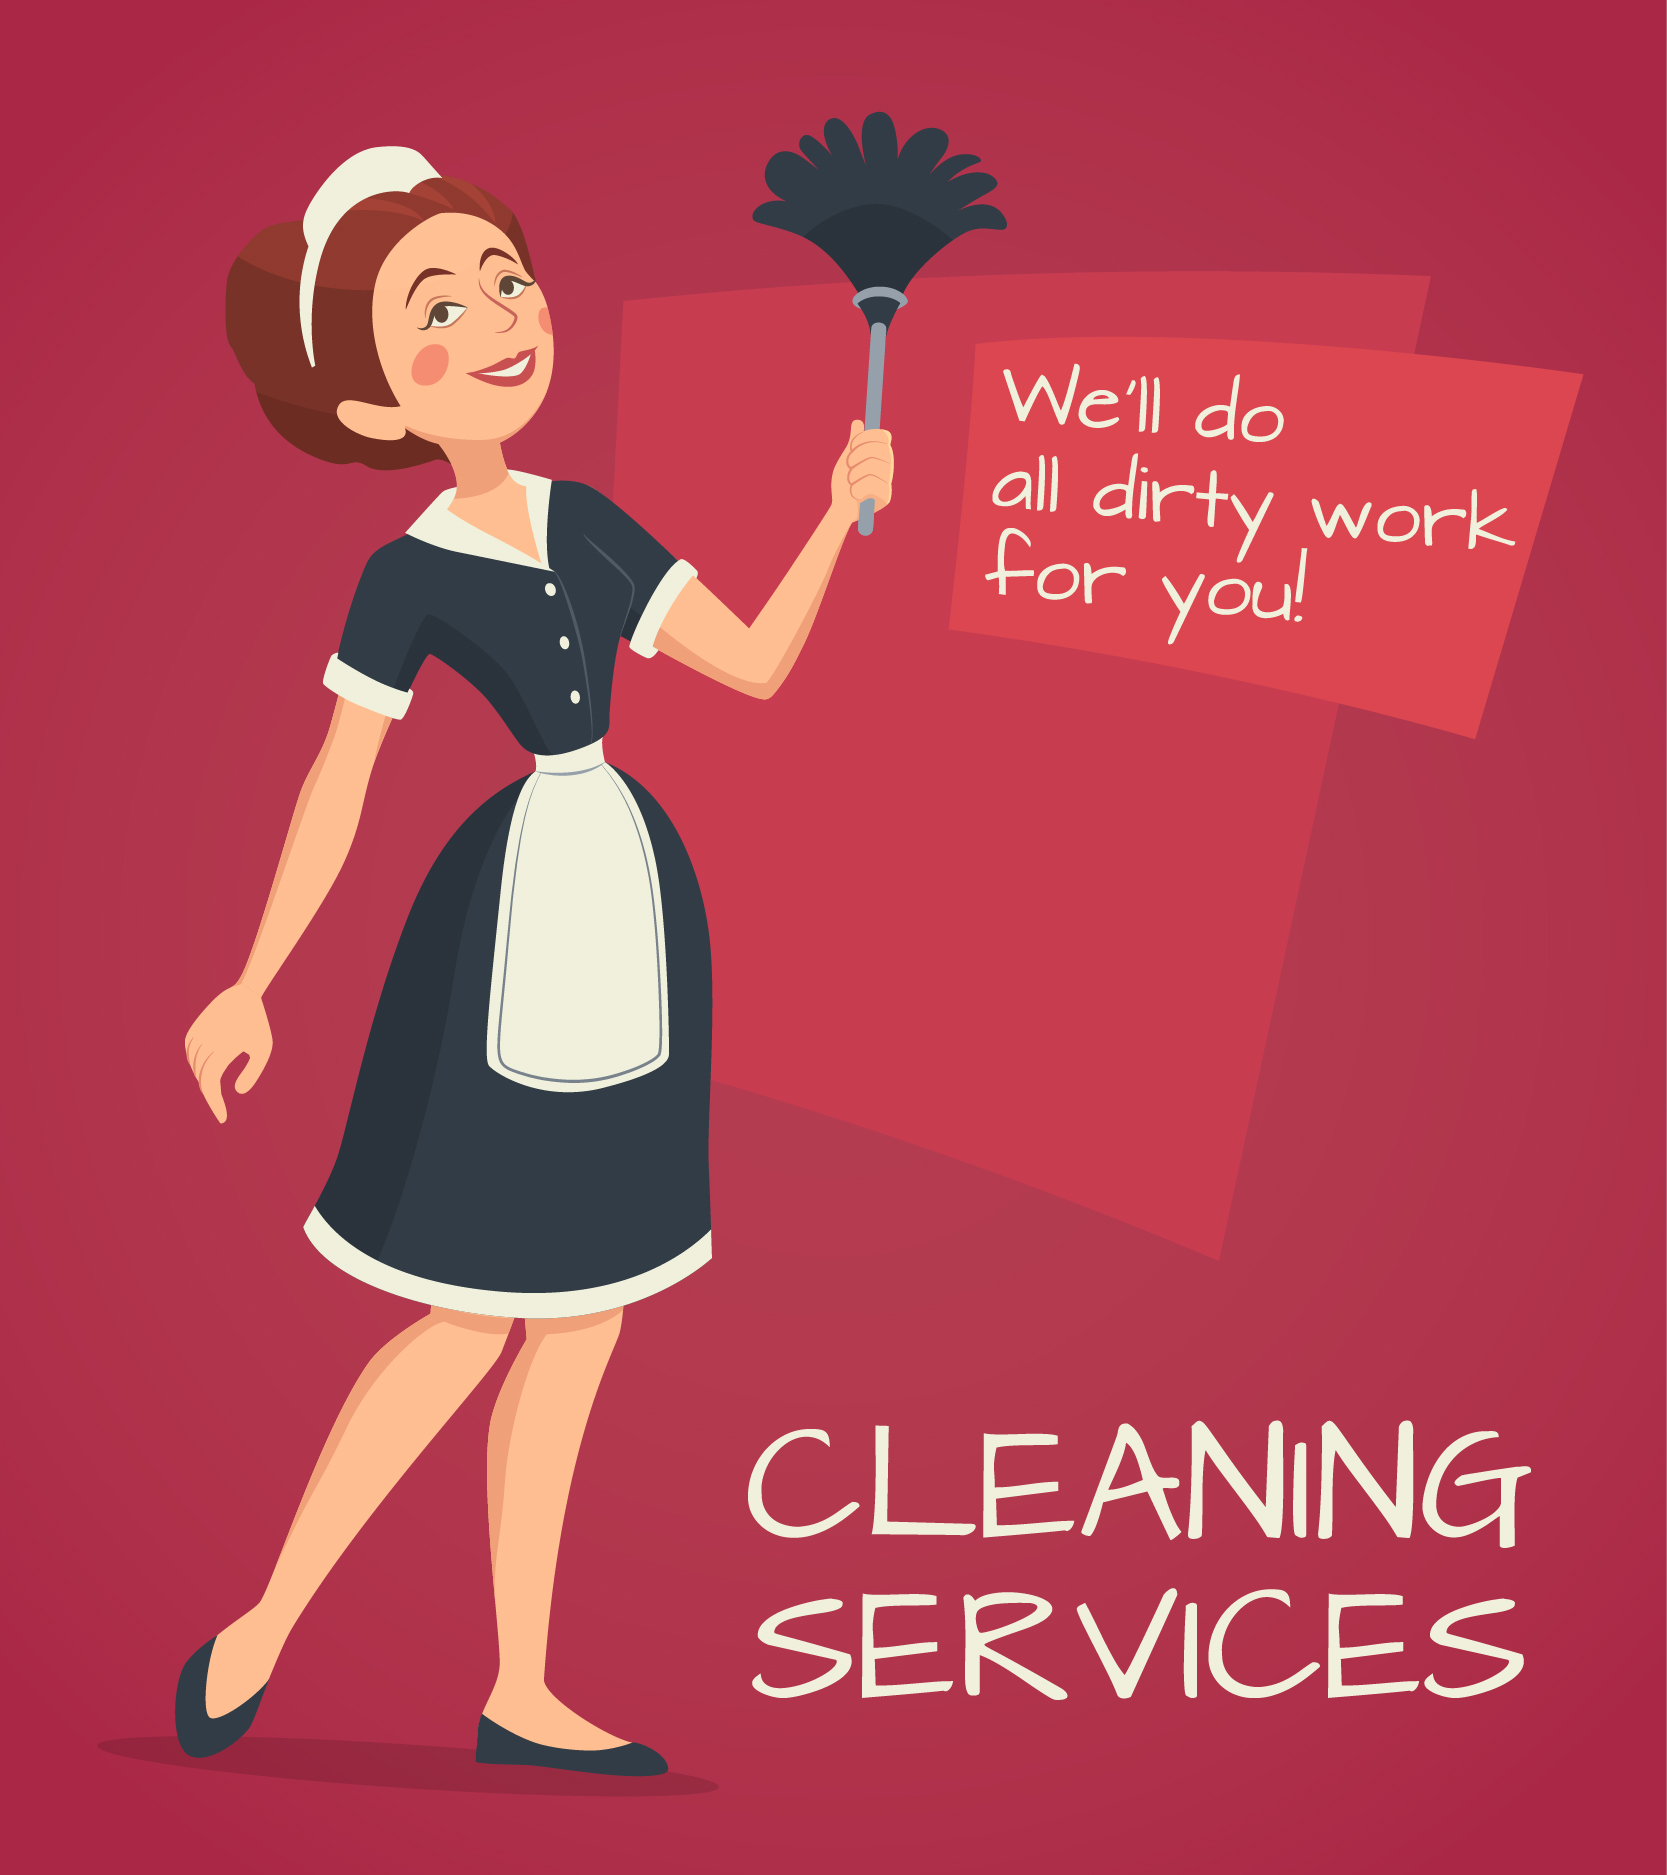 What Do You Expect from Your Apartment Cleaning Services